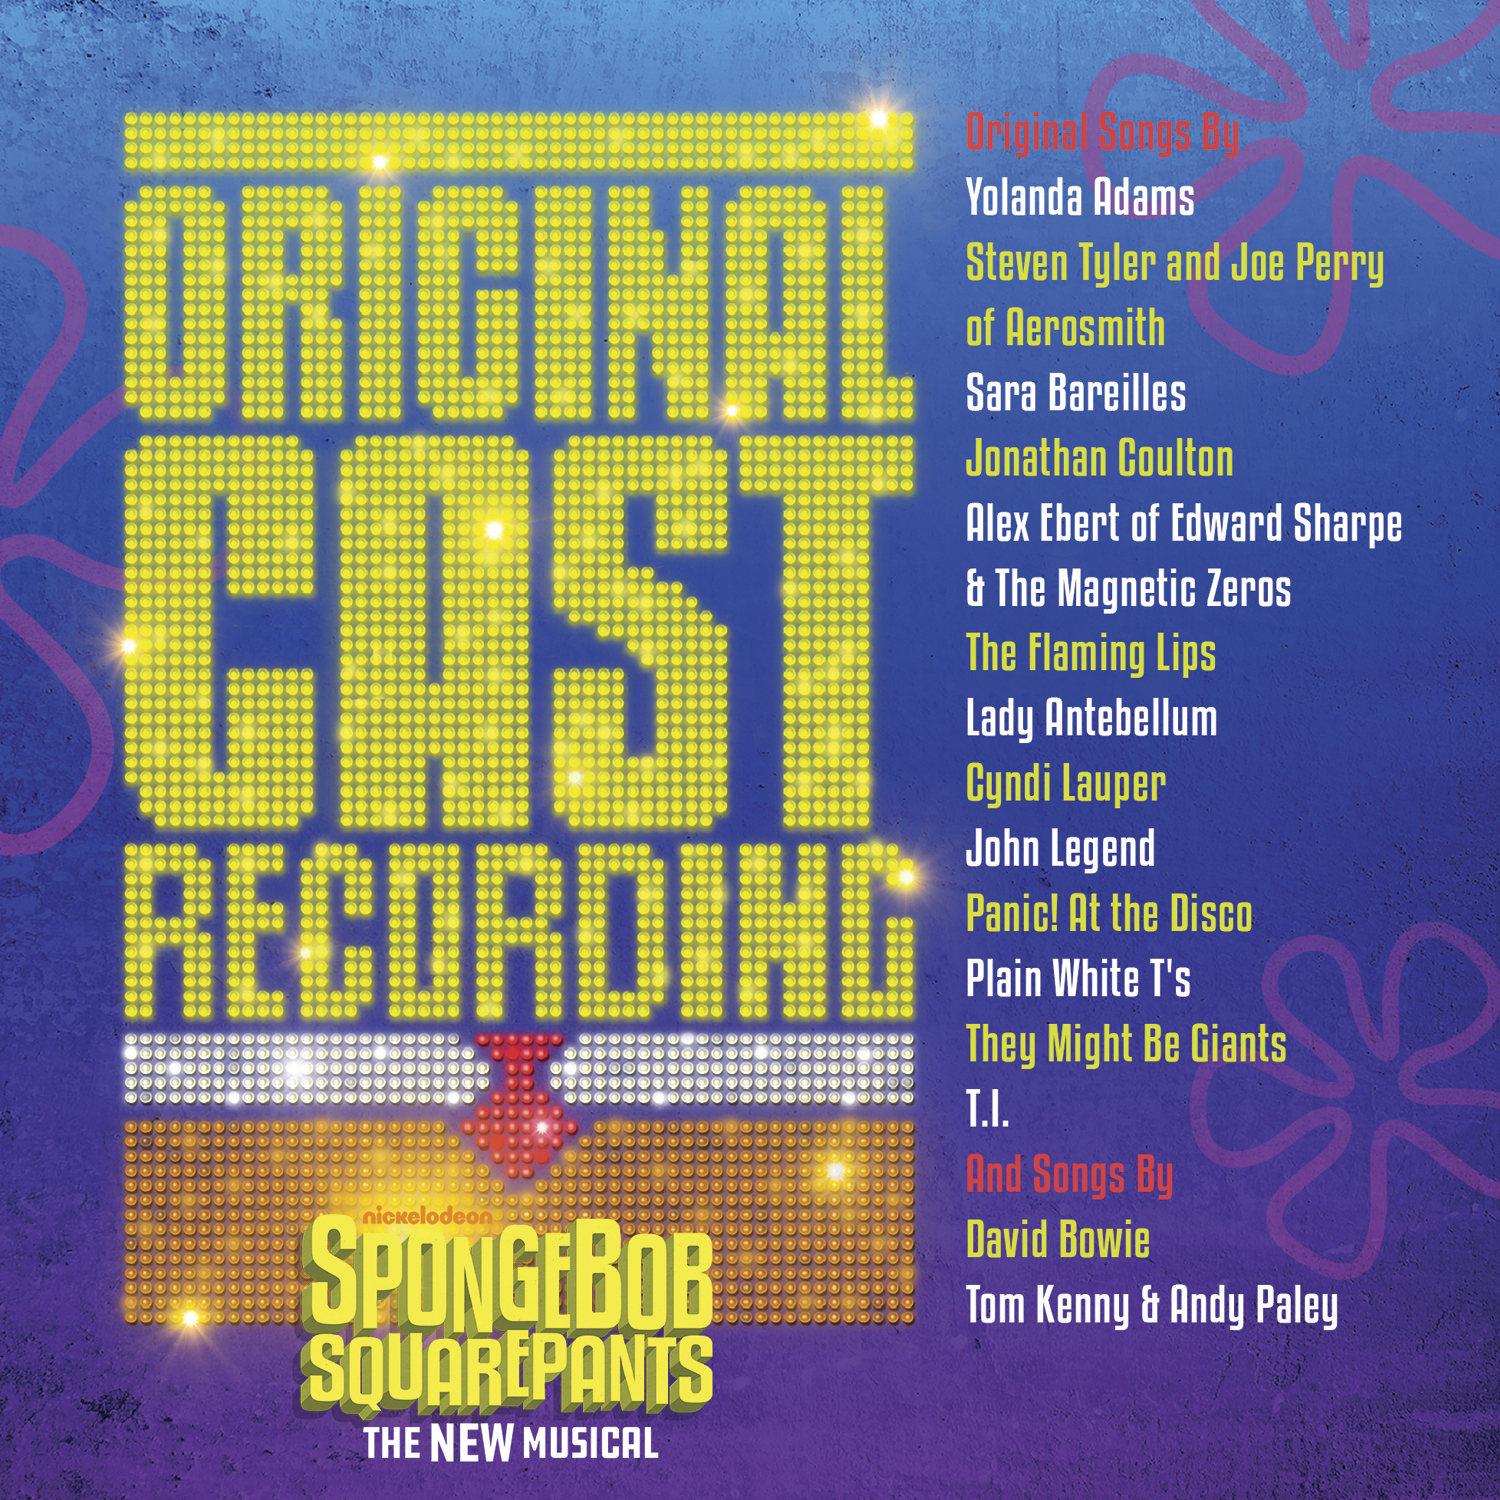 SPONGEBOB SQUAREPANTS THE NEW MUSICAL The Official